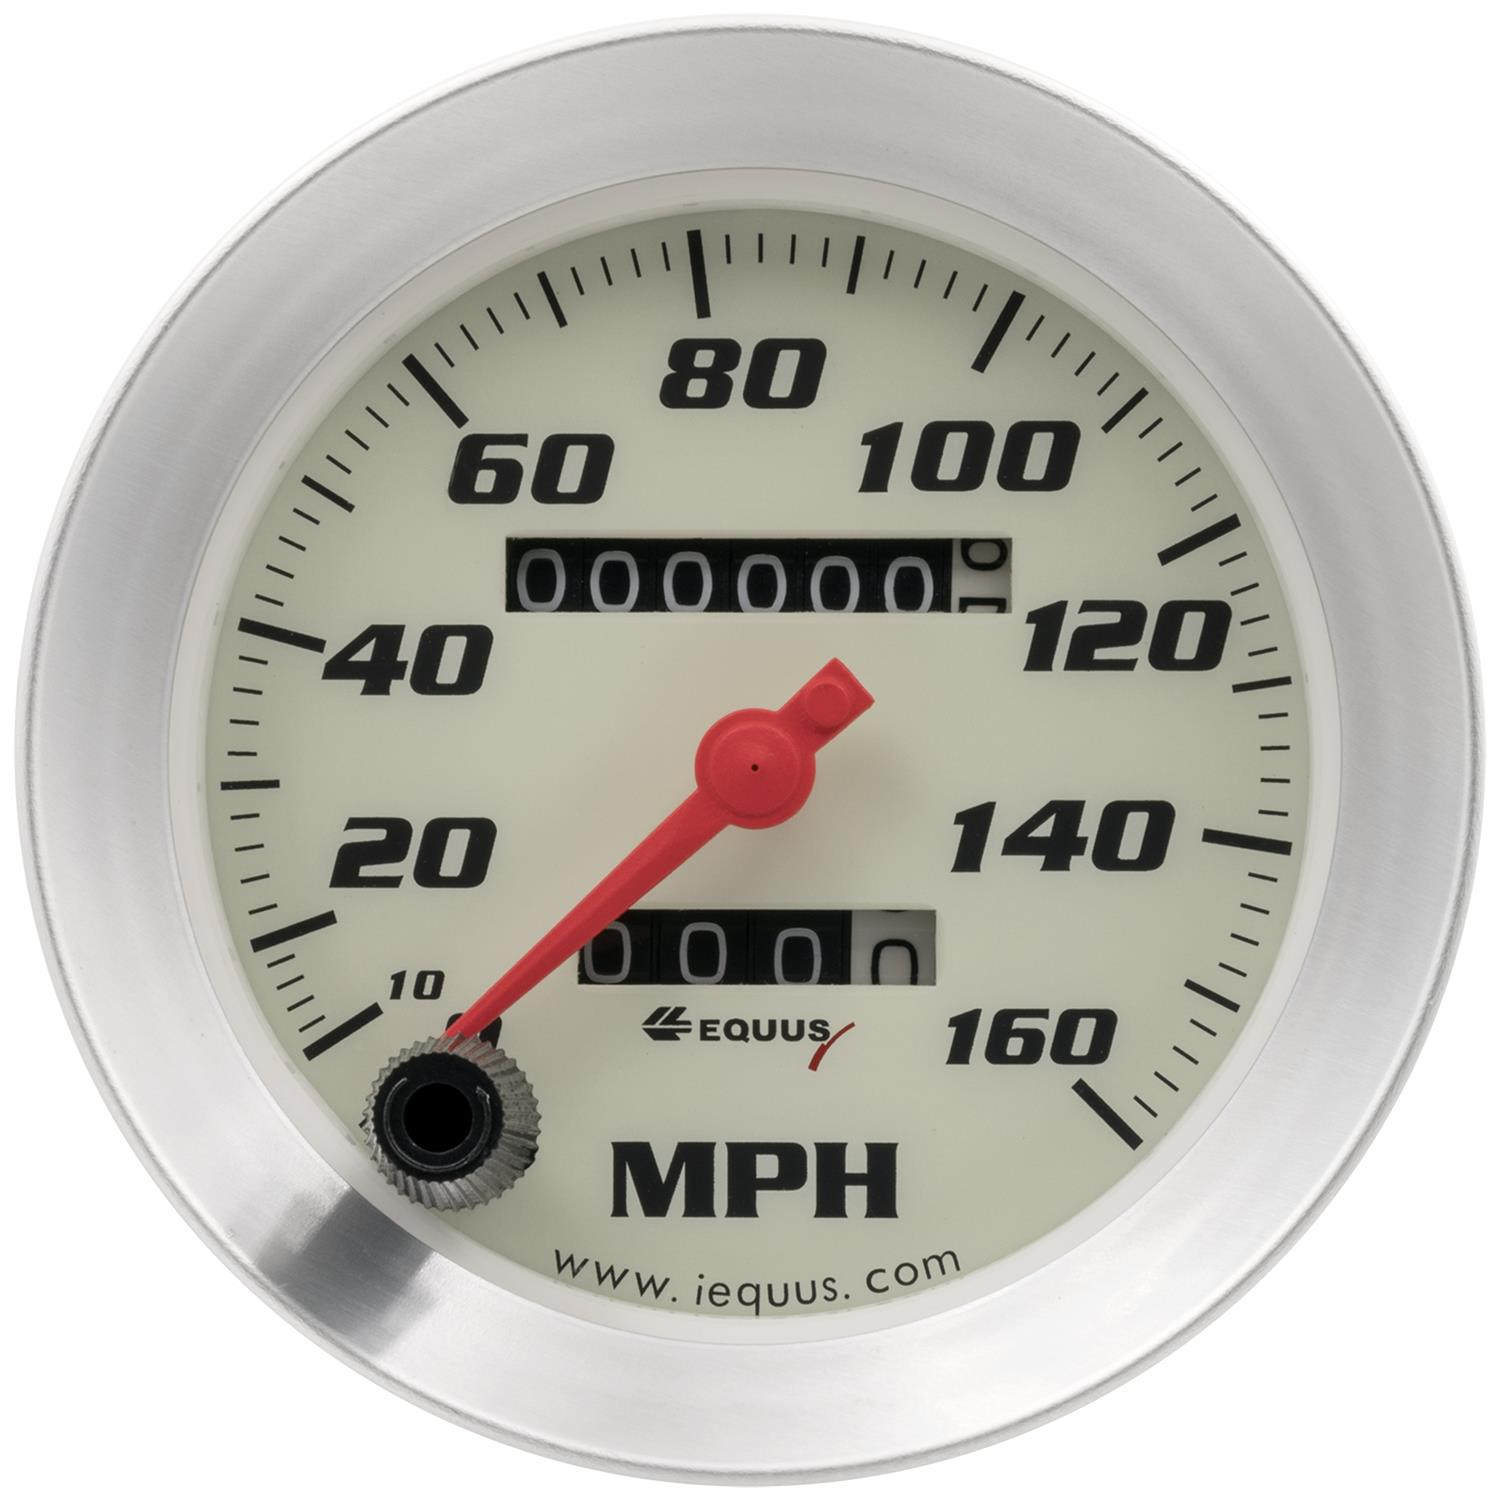 Equus 8000 Series Gauges 8076 Free Shipping On Orders Over 99 At. Equus 8000 Series Gauges 8076 Free Shipping On Orders Over 99 At Summit Racing. Wiring. 1949 Packard Wiring Diagram For Gas Gauge At Scoala.co